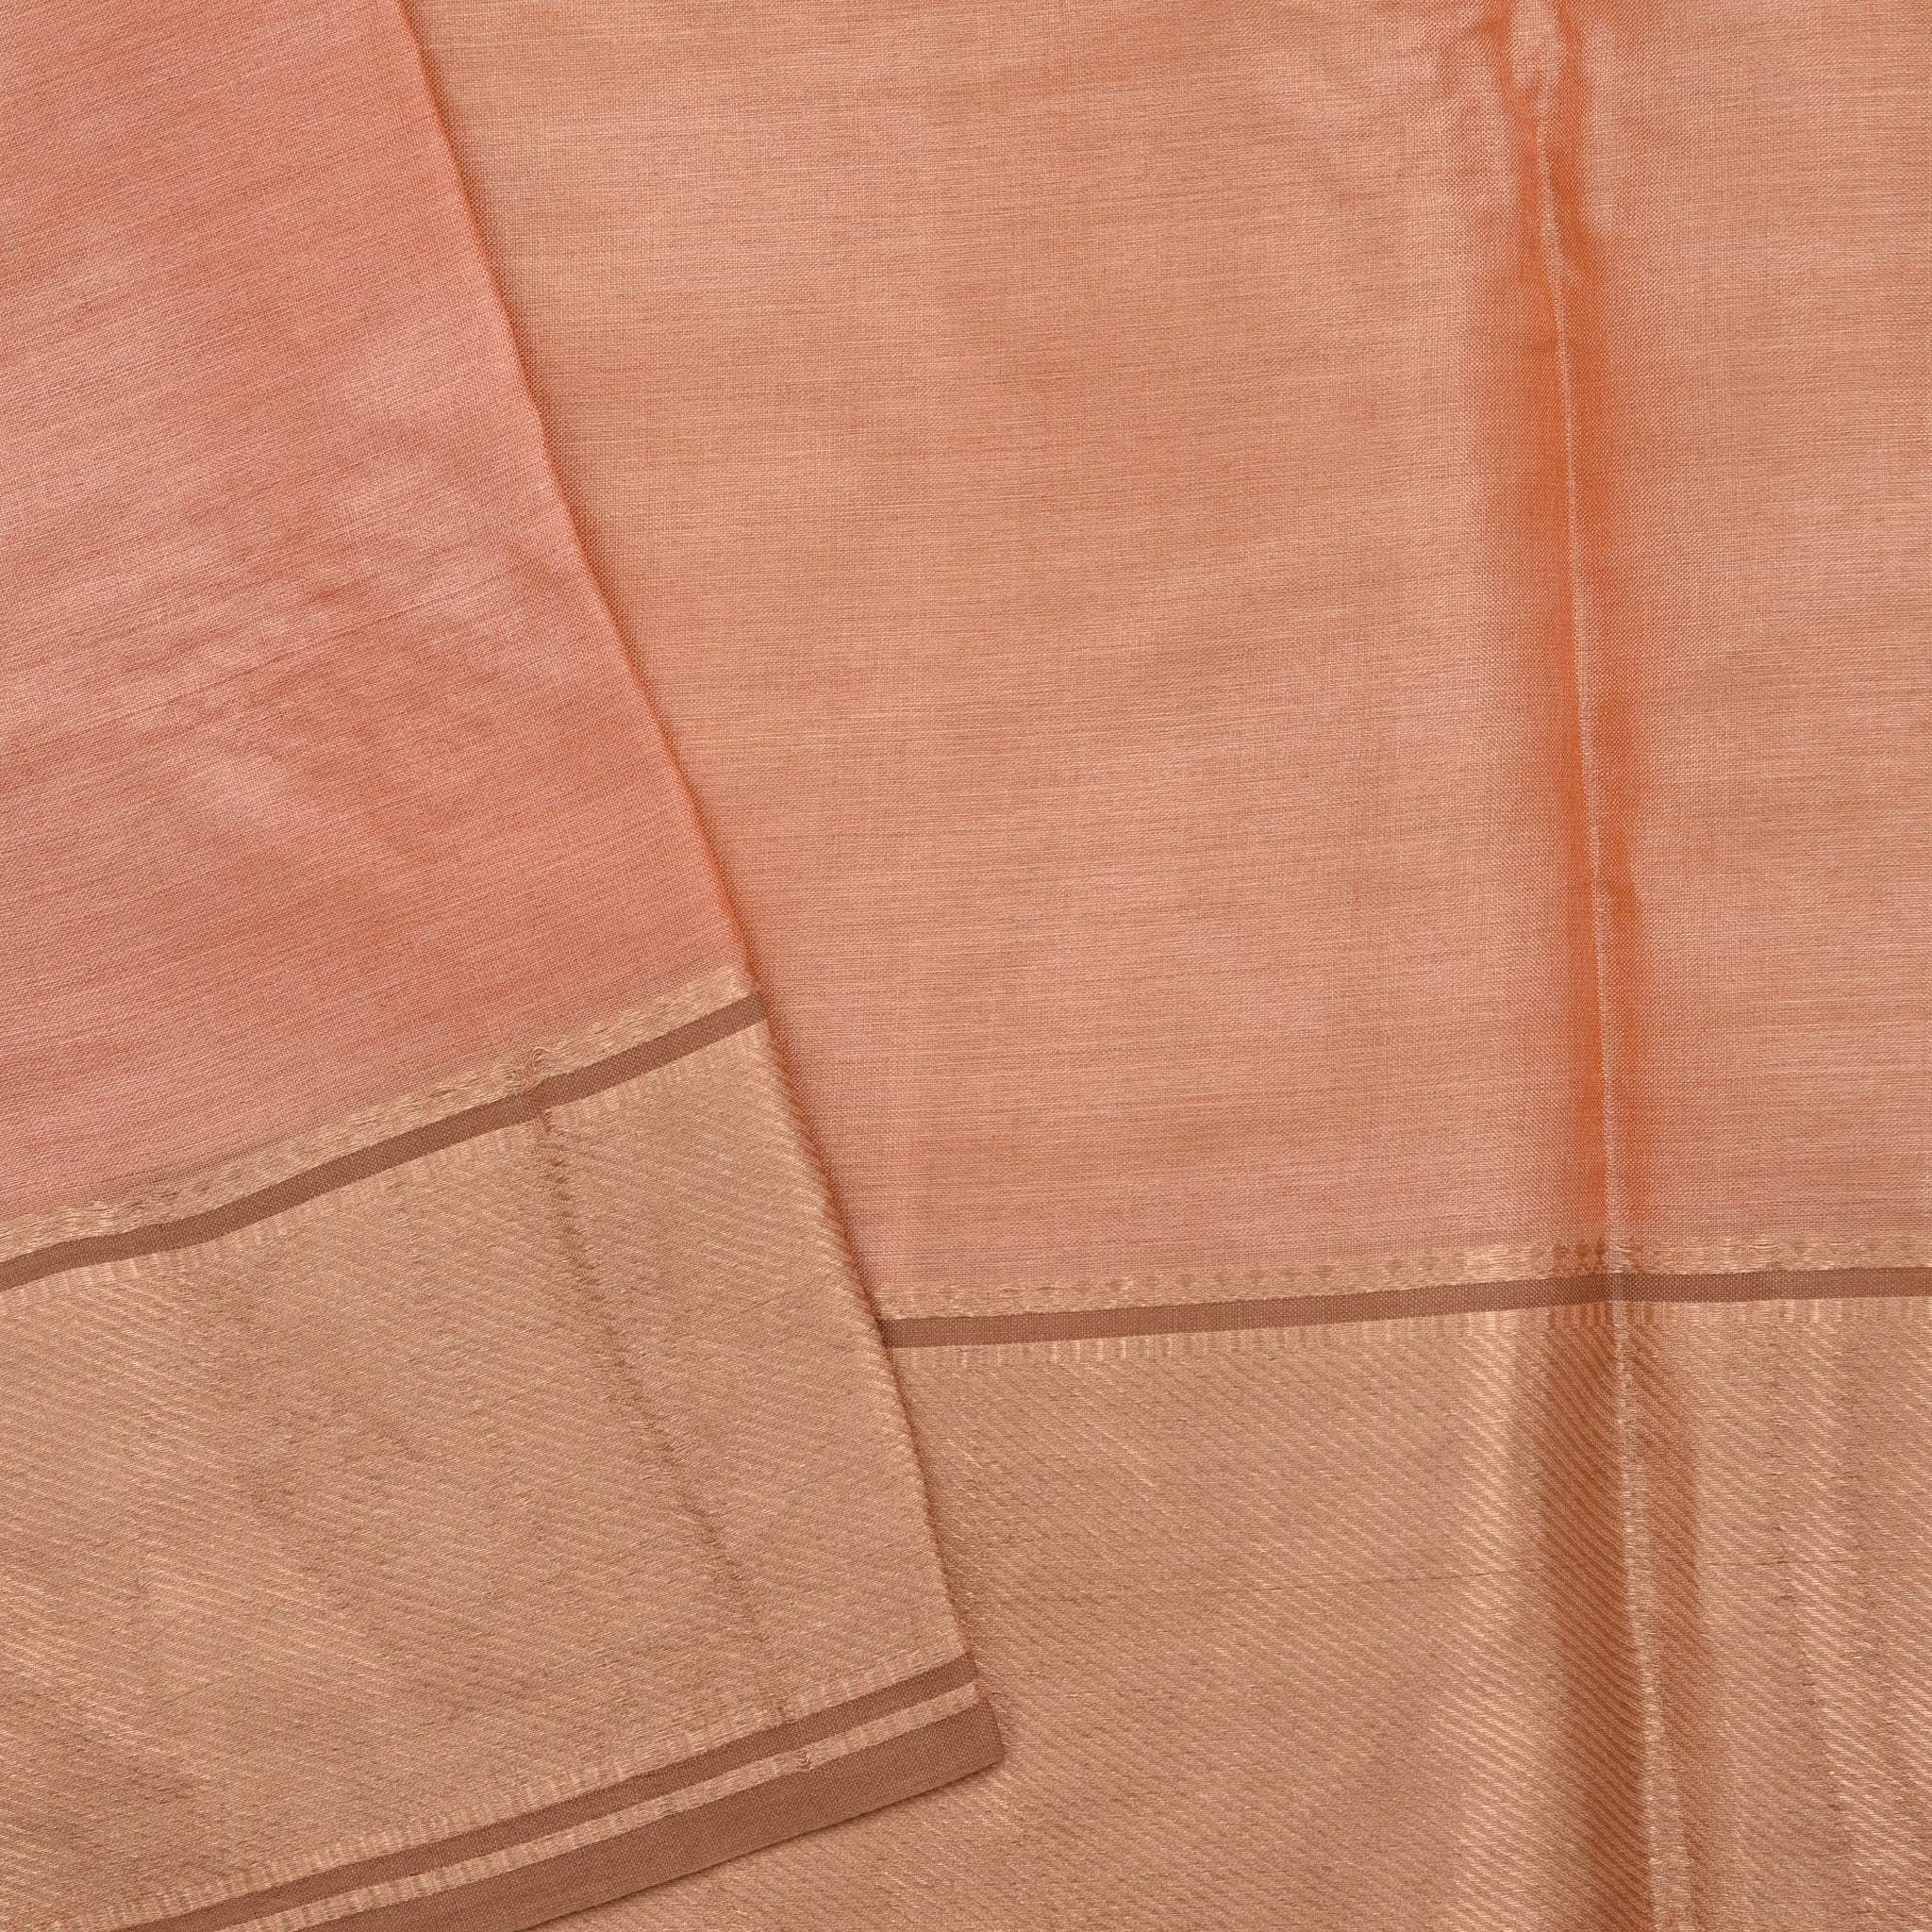 BB092747-Mellow Peach Handloom Tussar Embroidered Saree